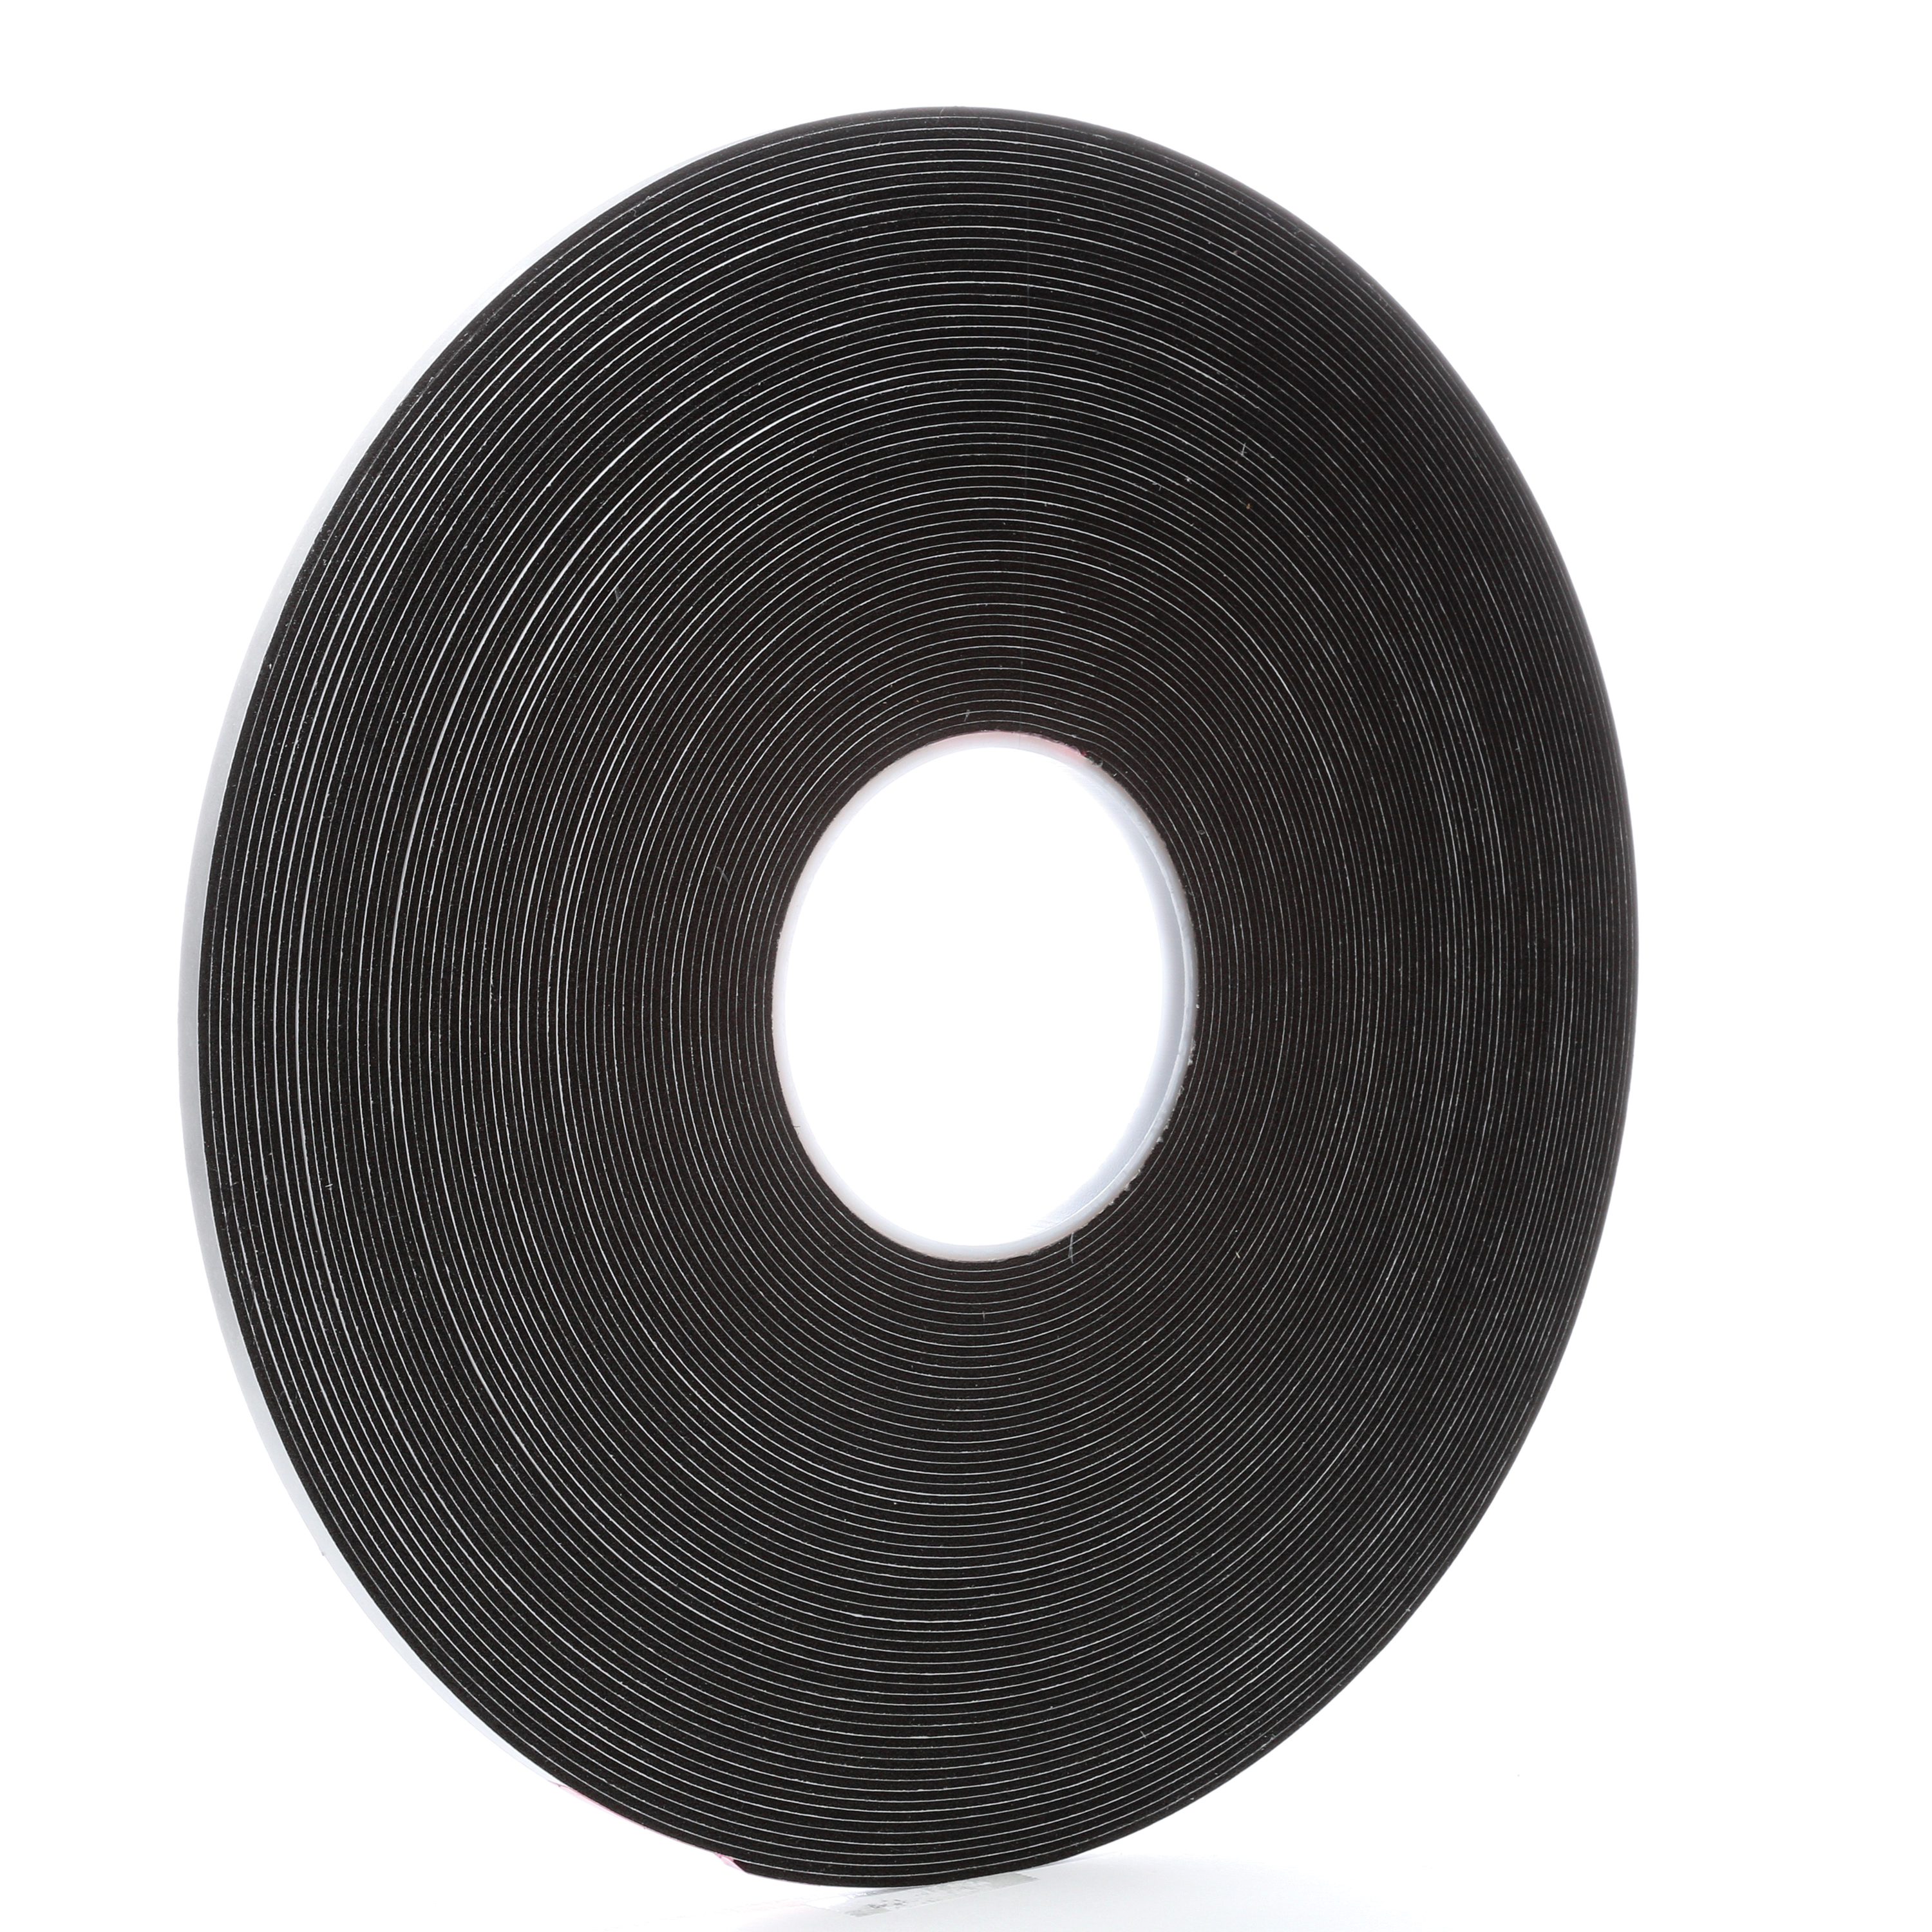 3M™ 021200-03305 Single Coated Foam Tape, 36 yd L x 1/4 in W, 62 mil THK, Acrylic Adhesive, Vinyl Foam Backing, Black